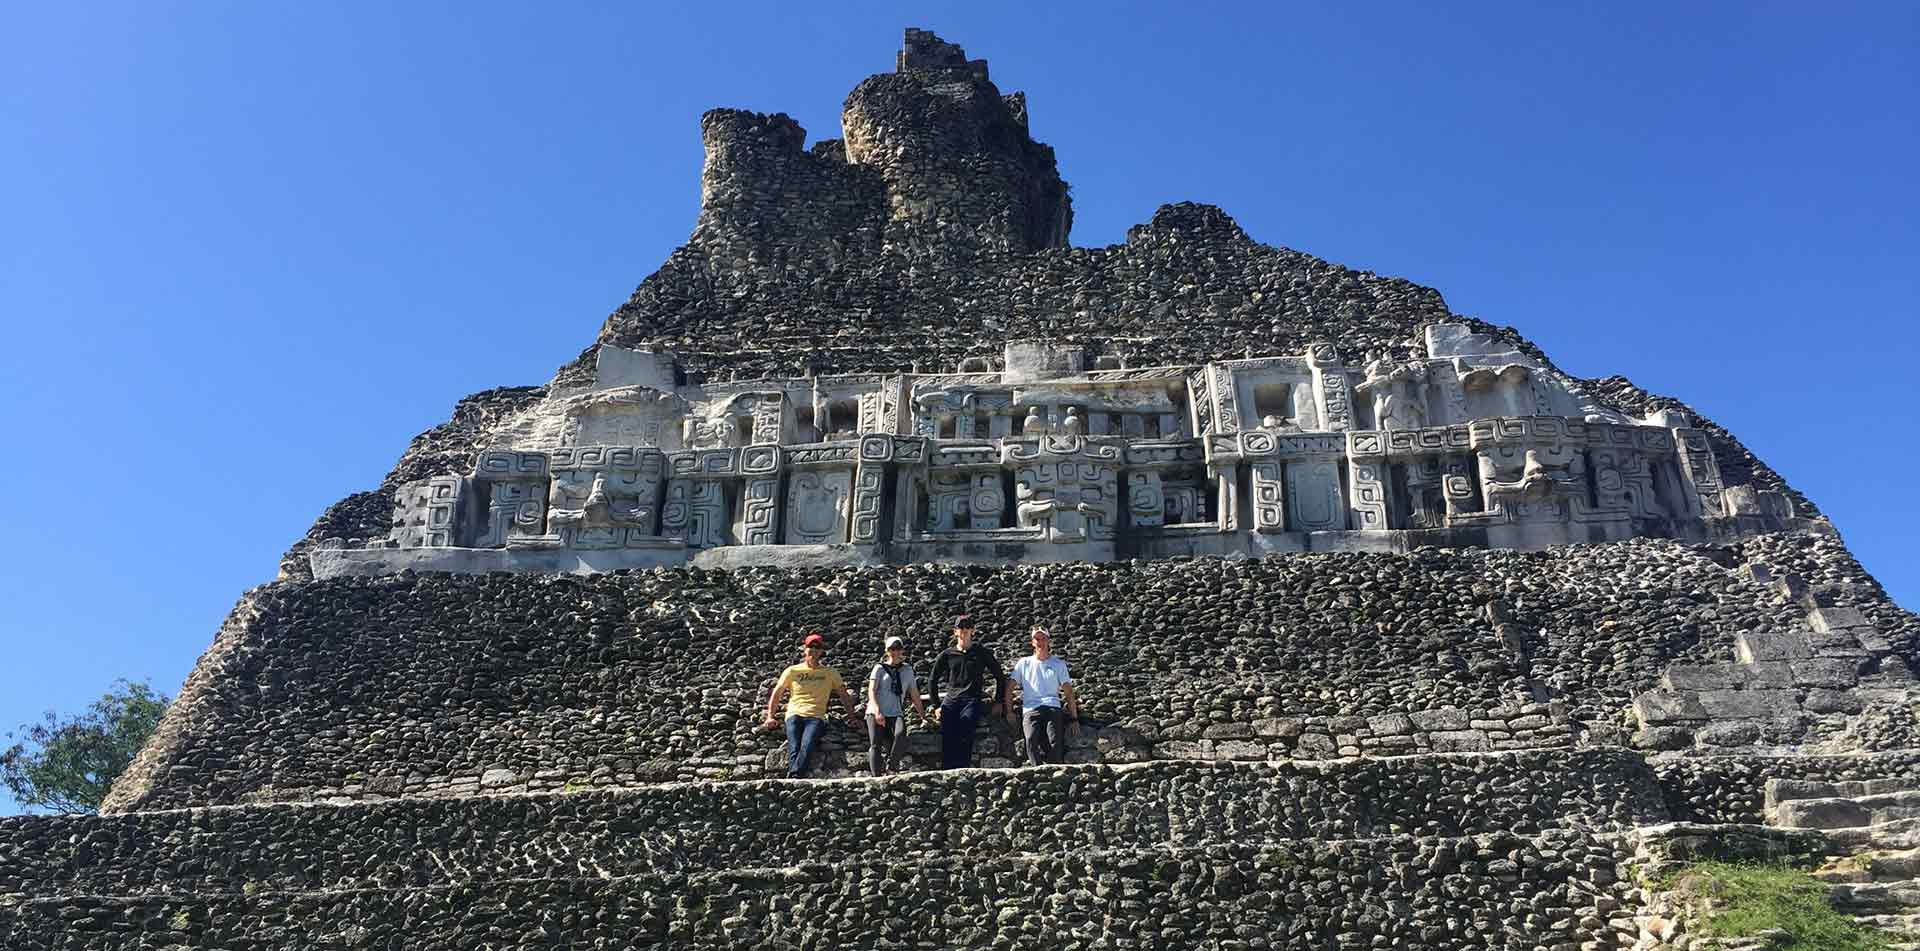 Central America Belize group posing ancient Mayan ruins historical architecture - luxury vacation destinations